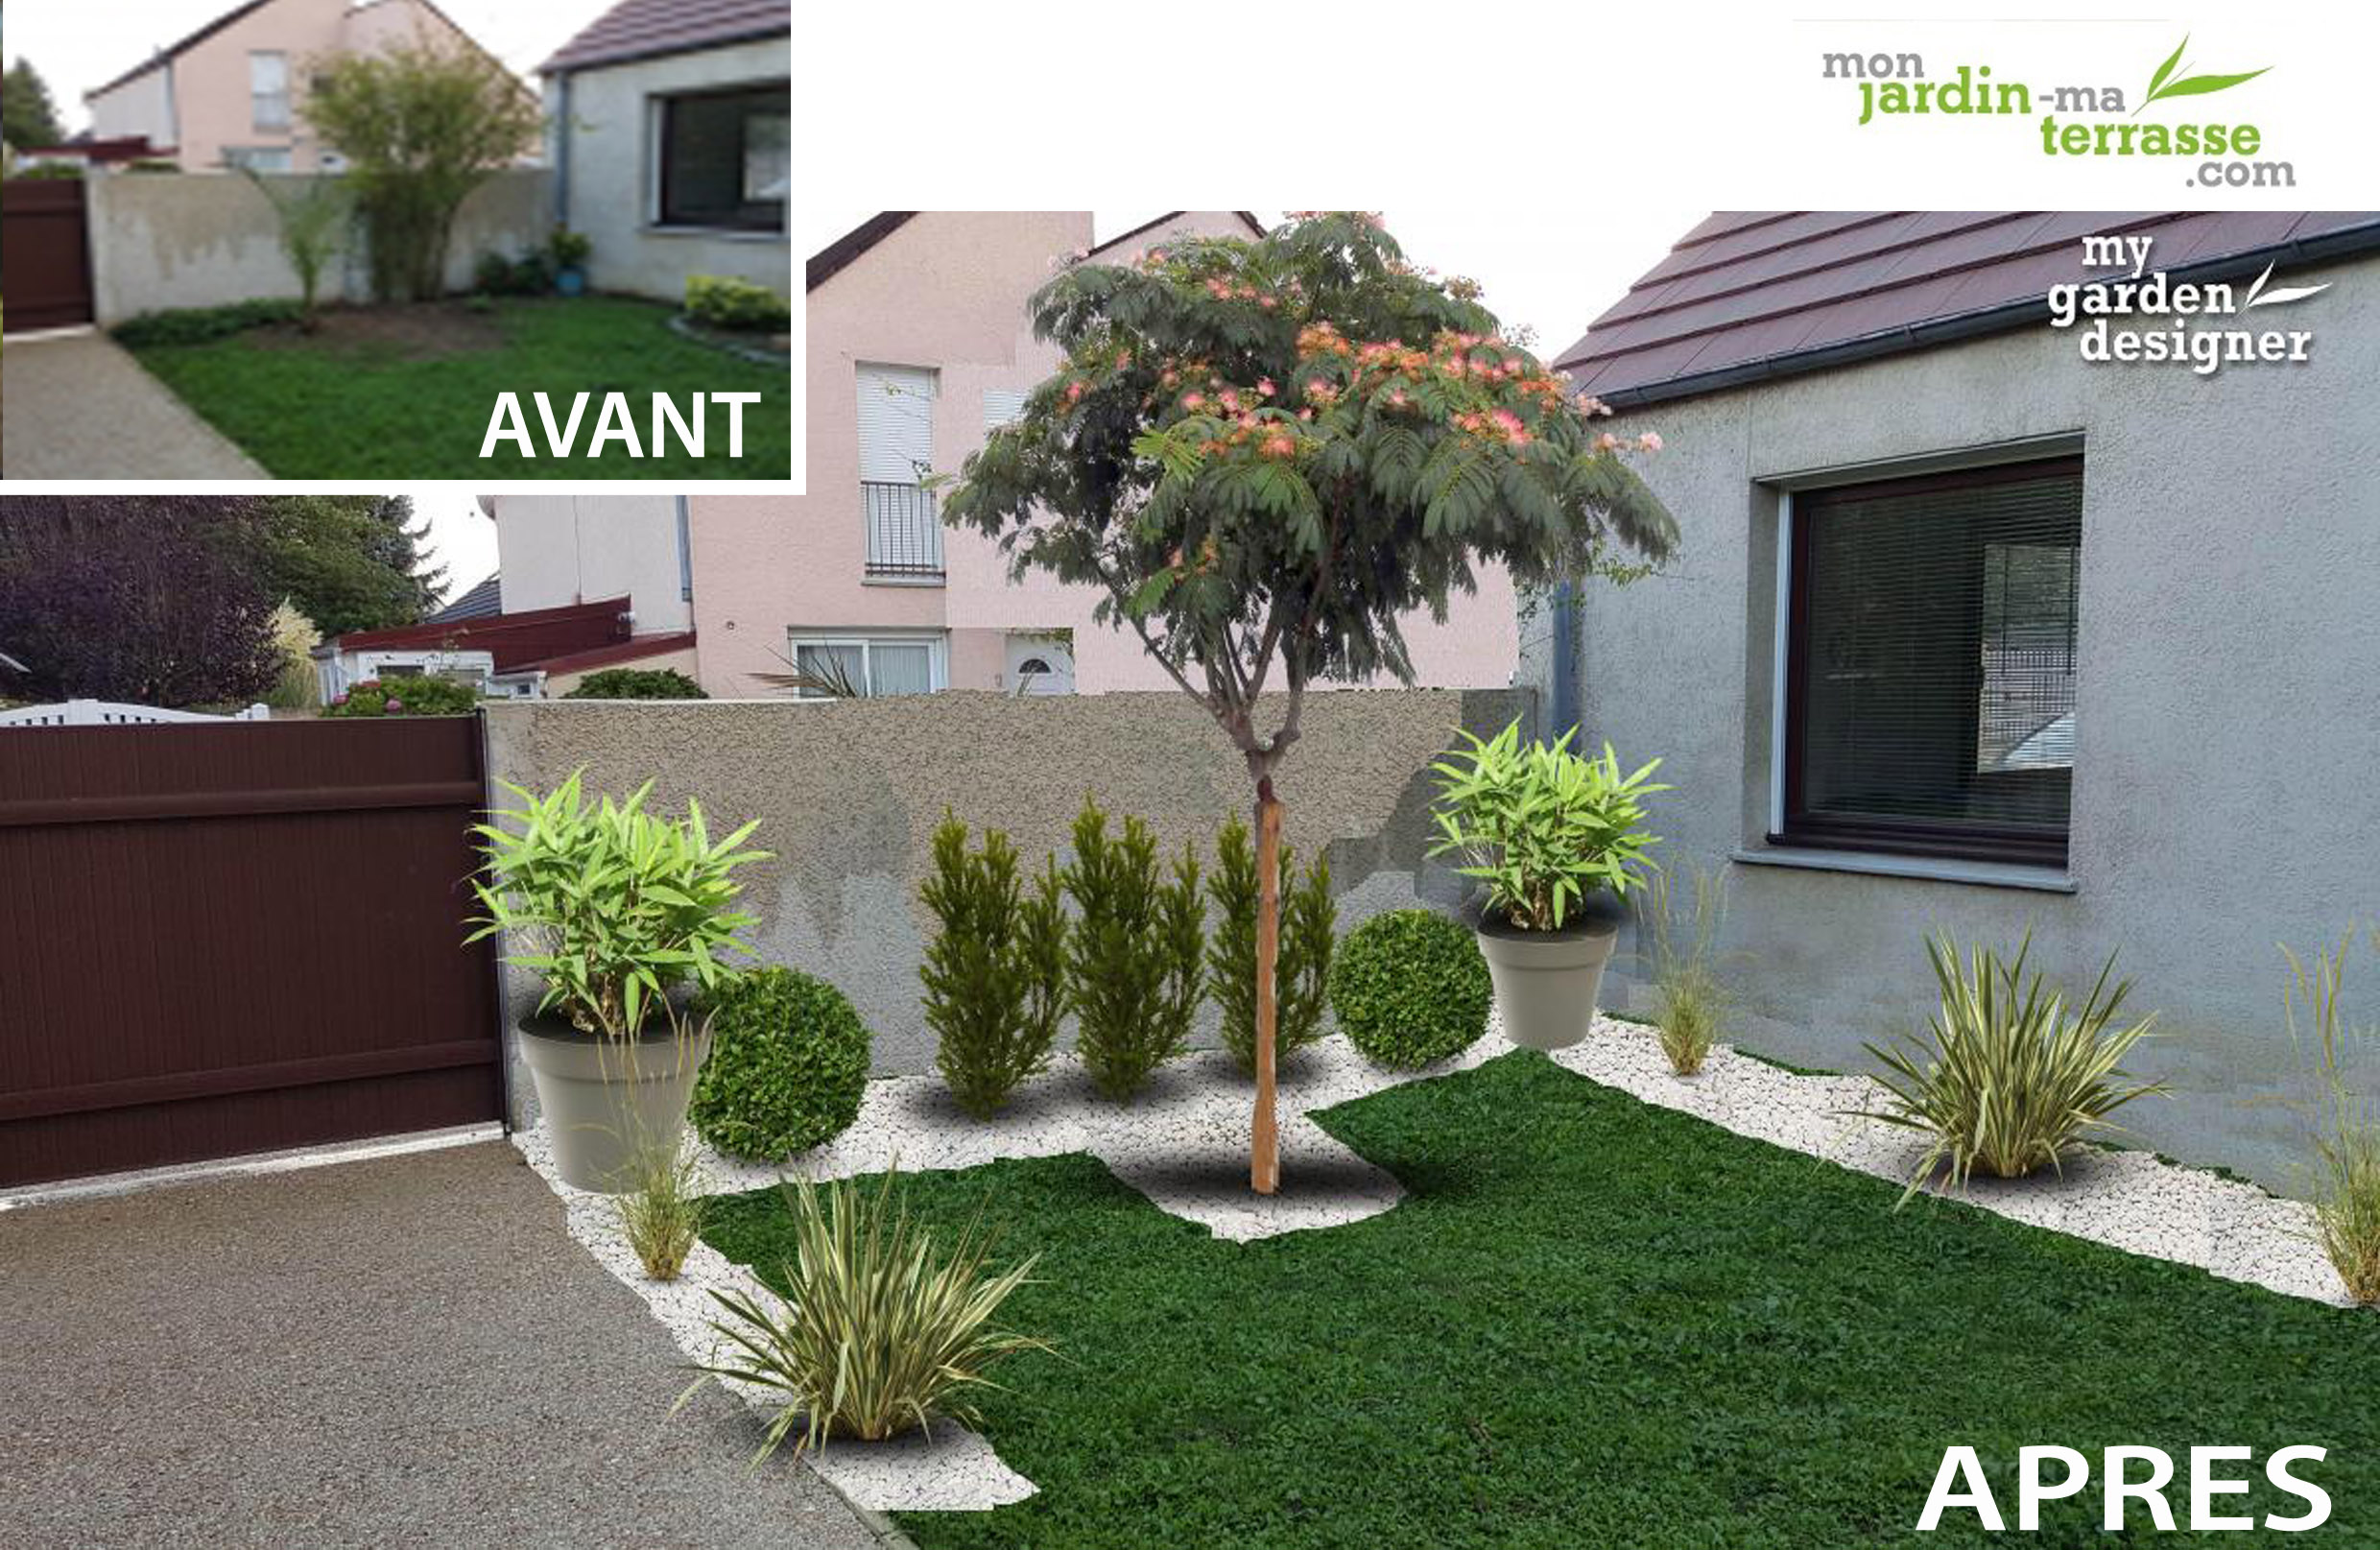 Am nager un petit jardin de 30m monjardin for Amenager un jardin